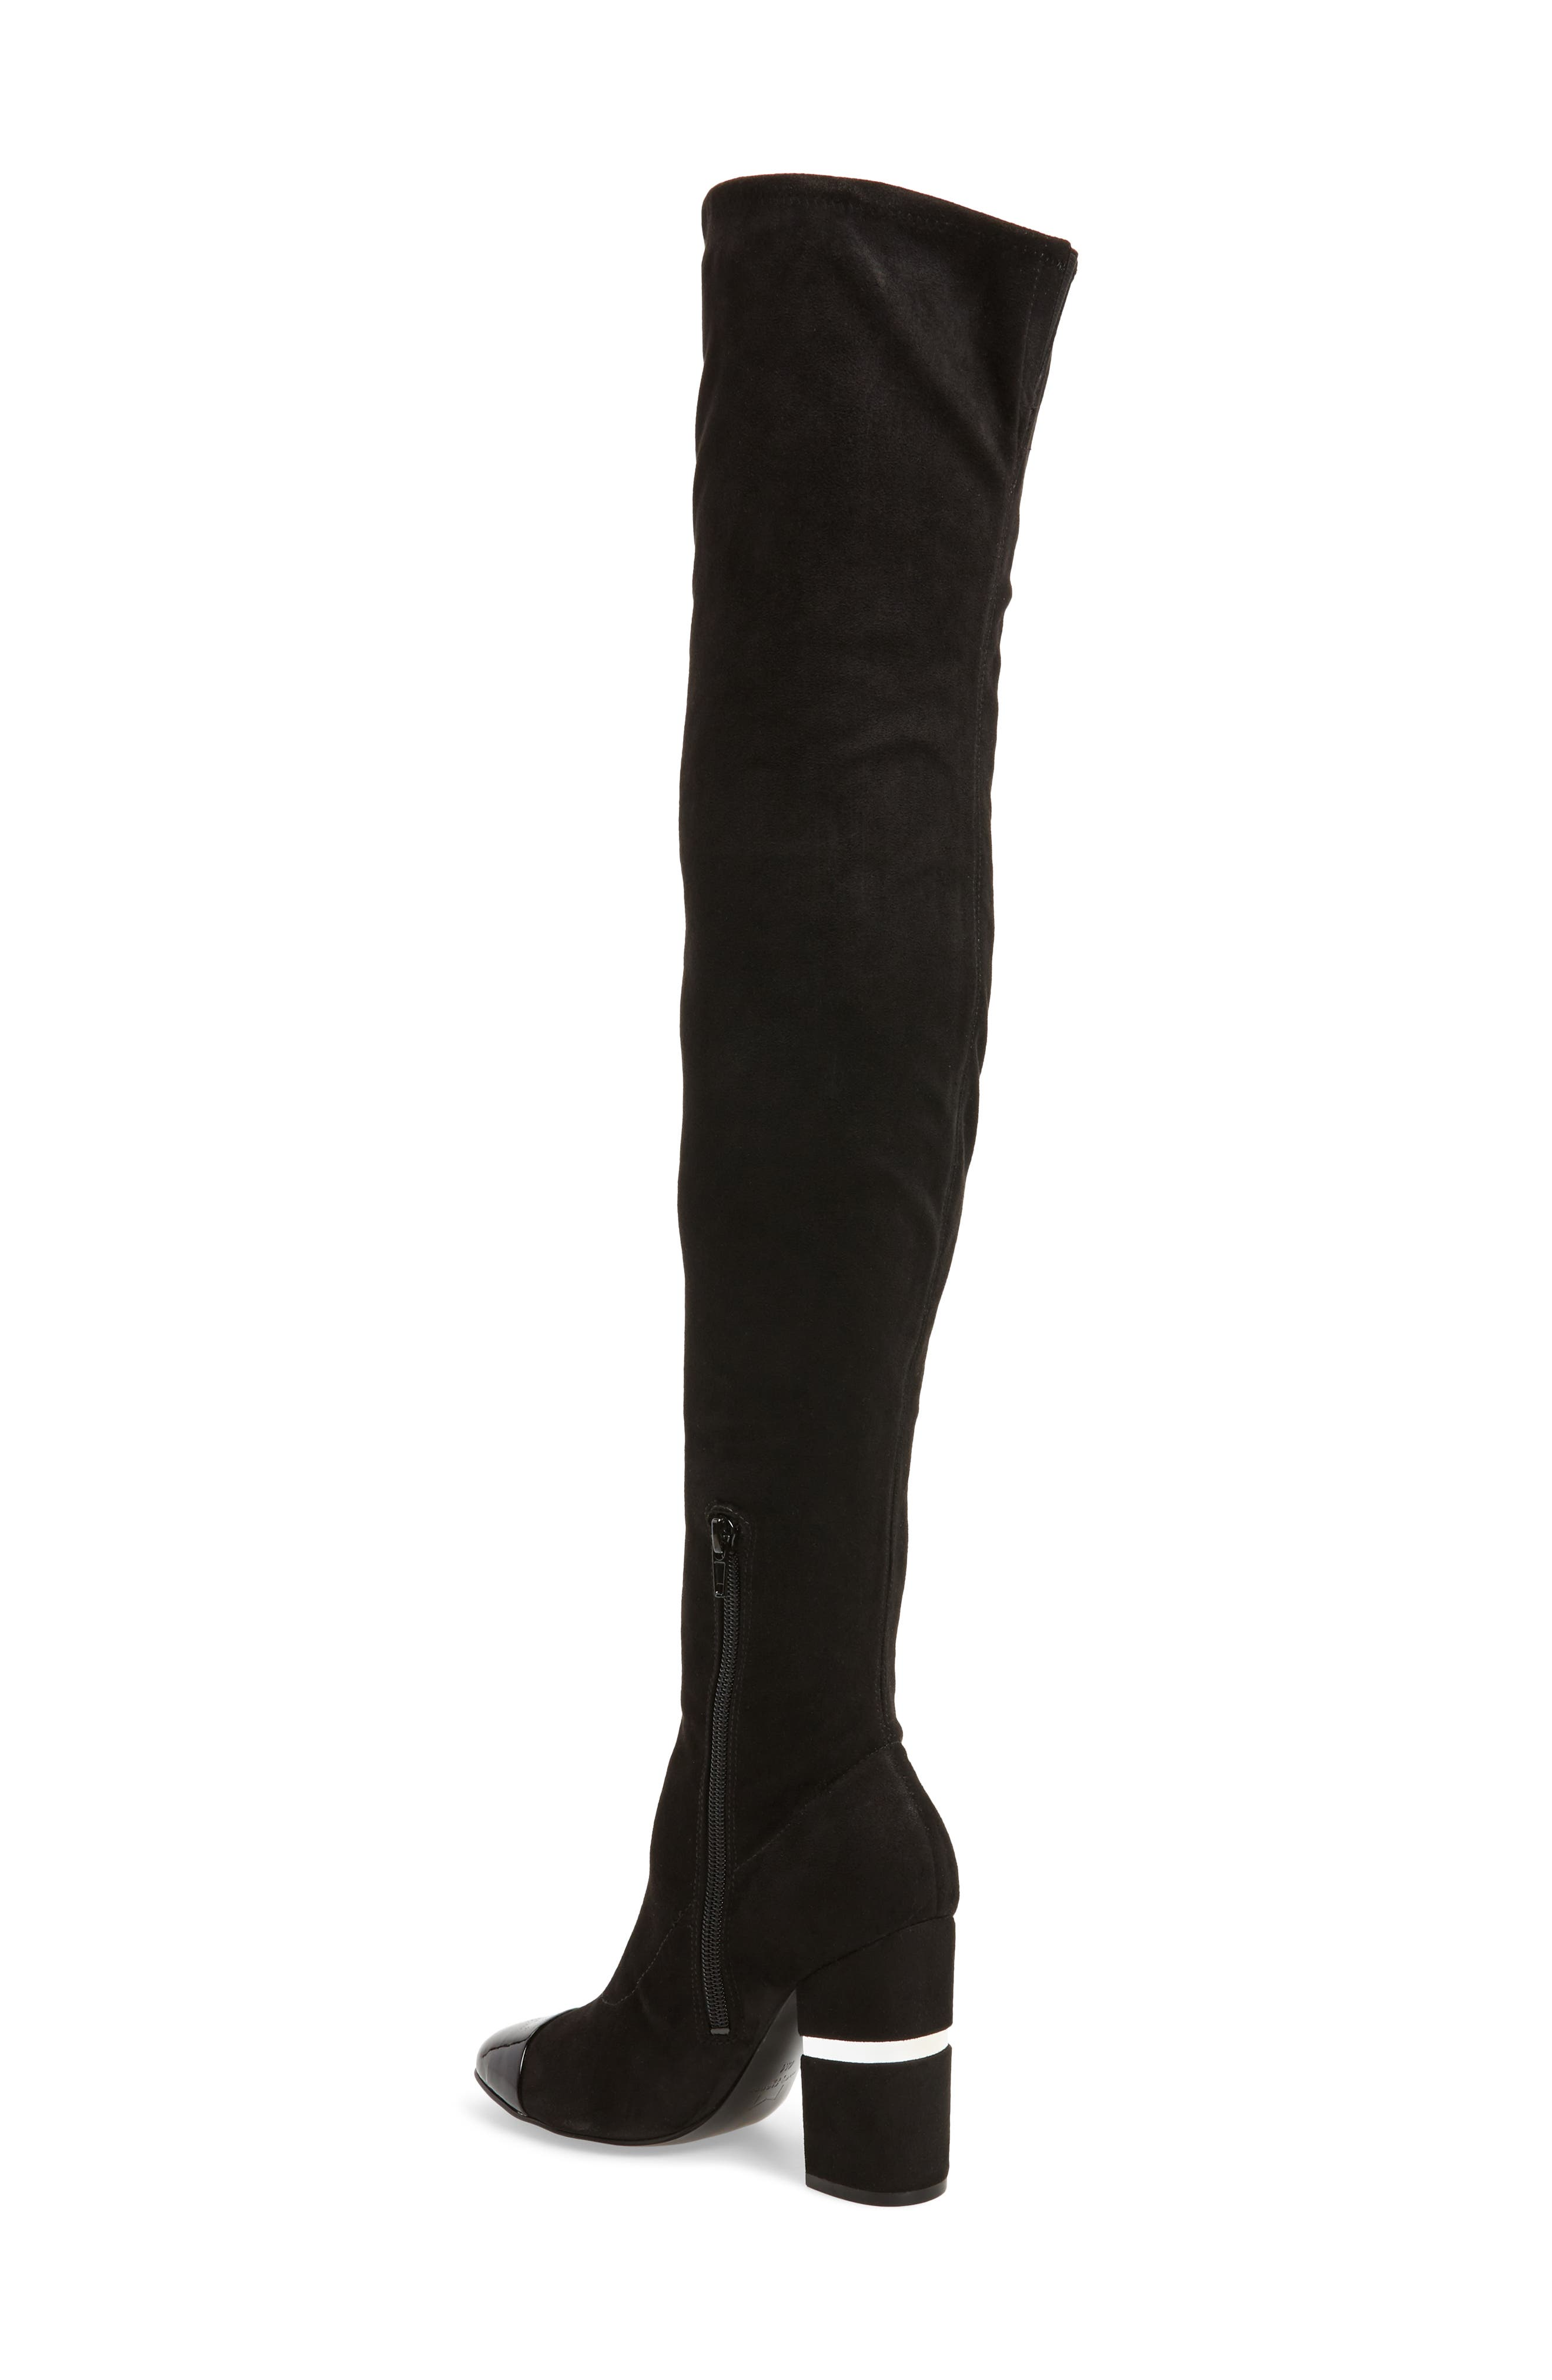 Petel Over the Knee Boot,                             Alternate thumbnail 2, color,                             001